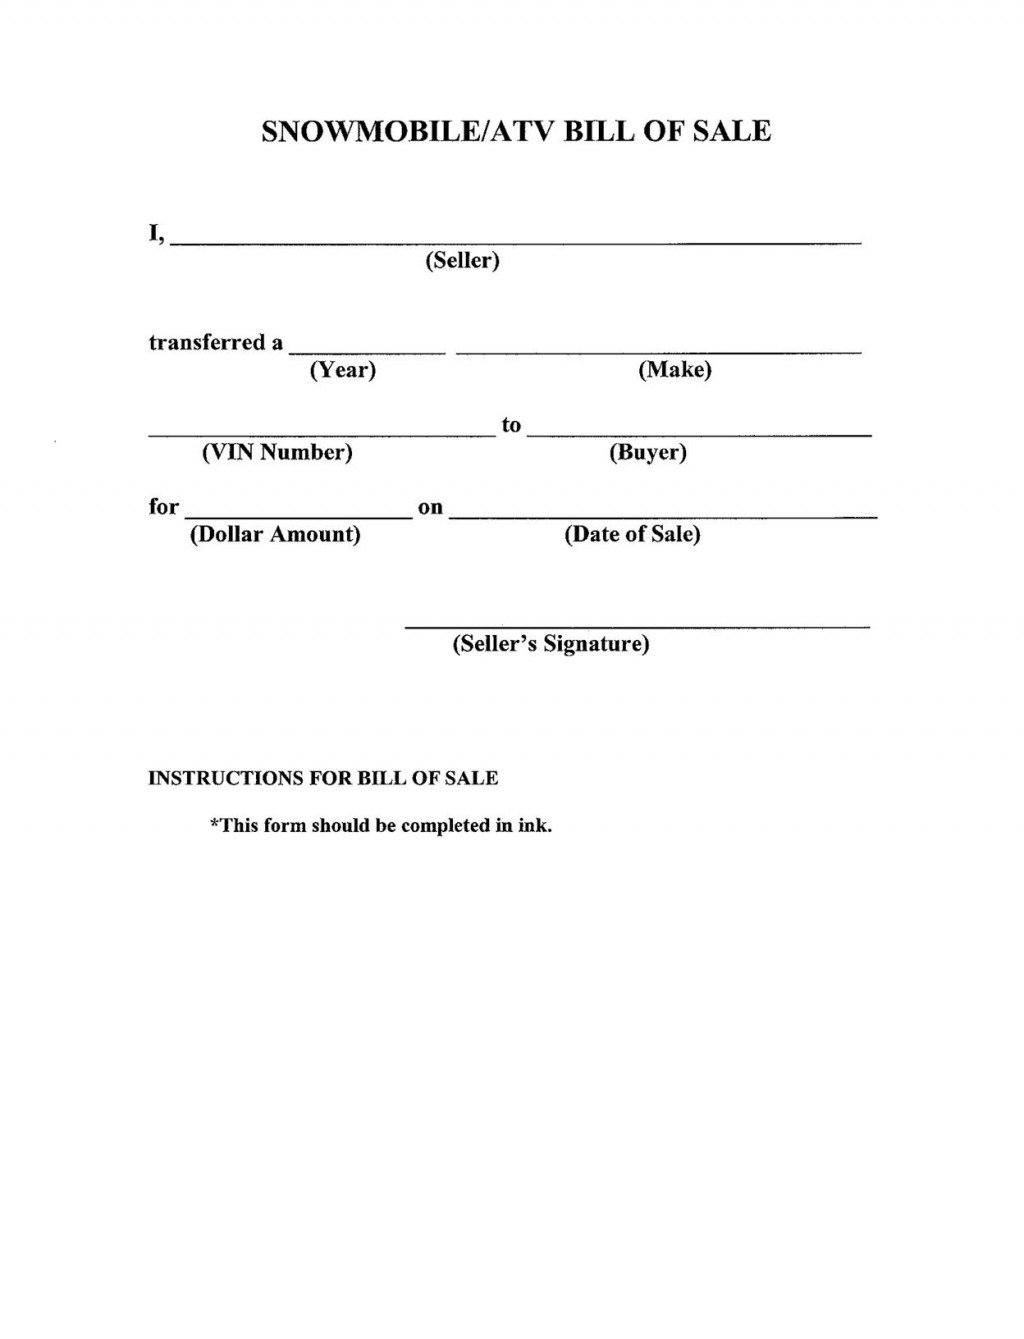 007 Striking Template For Bill Of Sale High Resolution  Example Trailer Free Mobile Home Used CarLarge